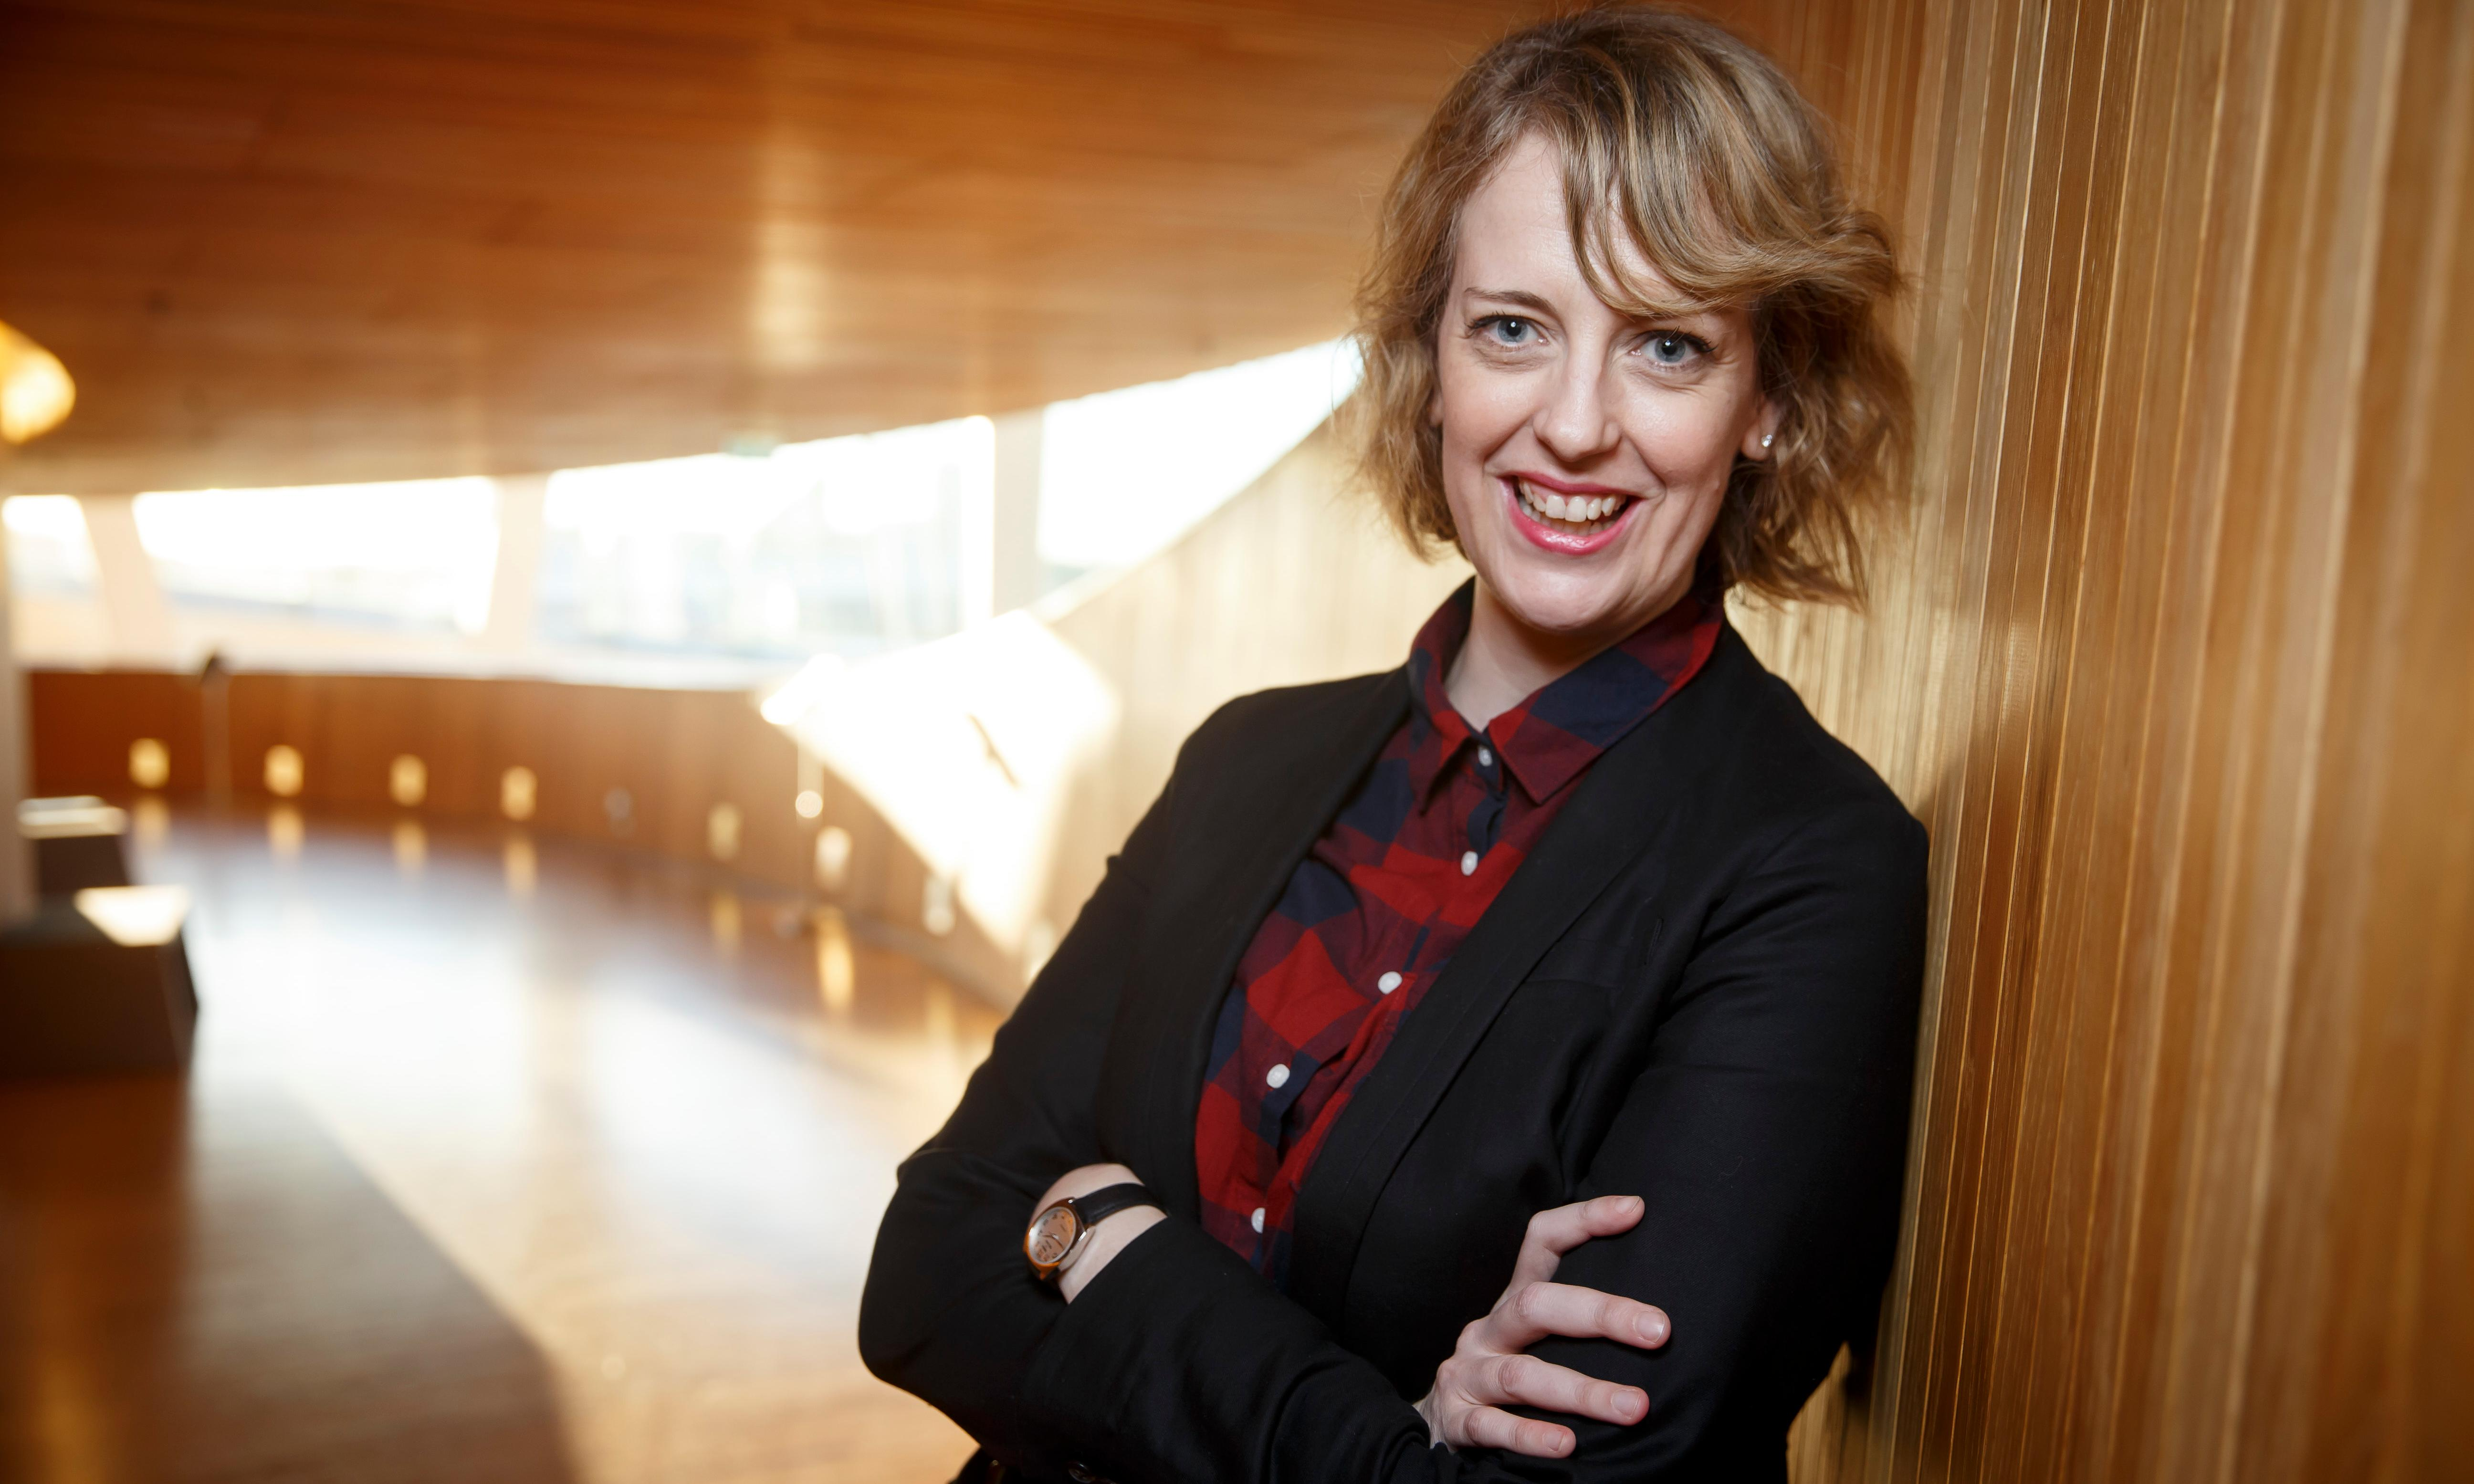 English National Opera names Annilese Miskimmon as new artistic director